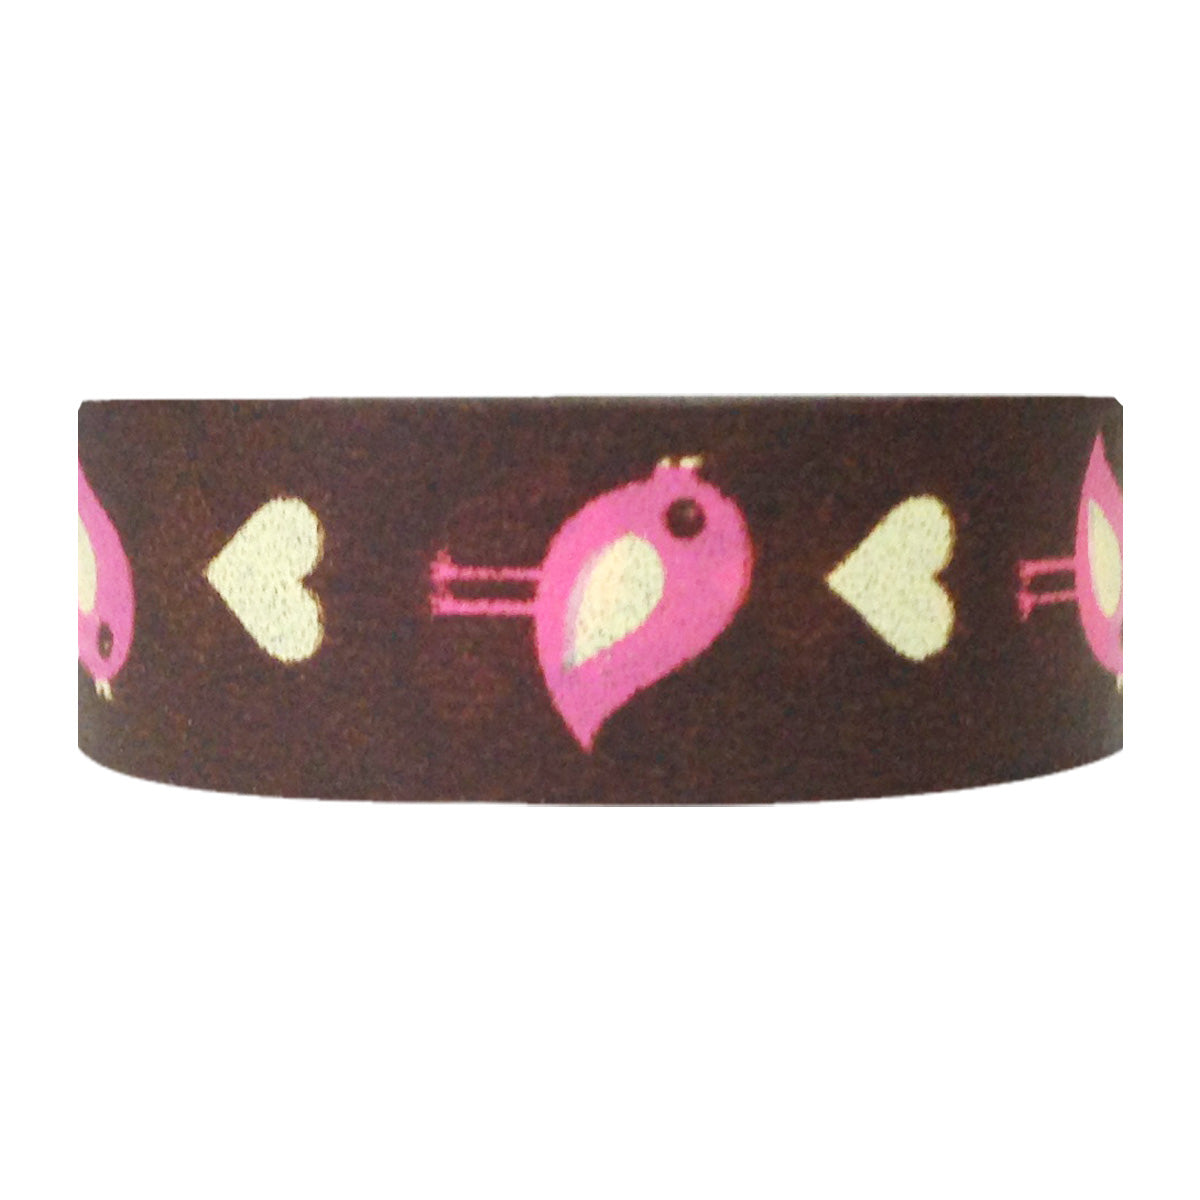 Wrapables Hearts & Sweets Washi Masking Tape, Love Birds